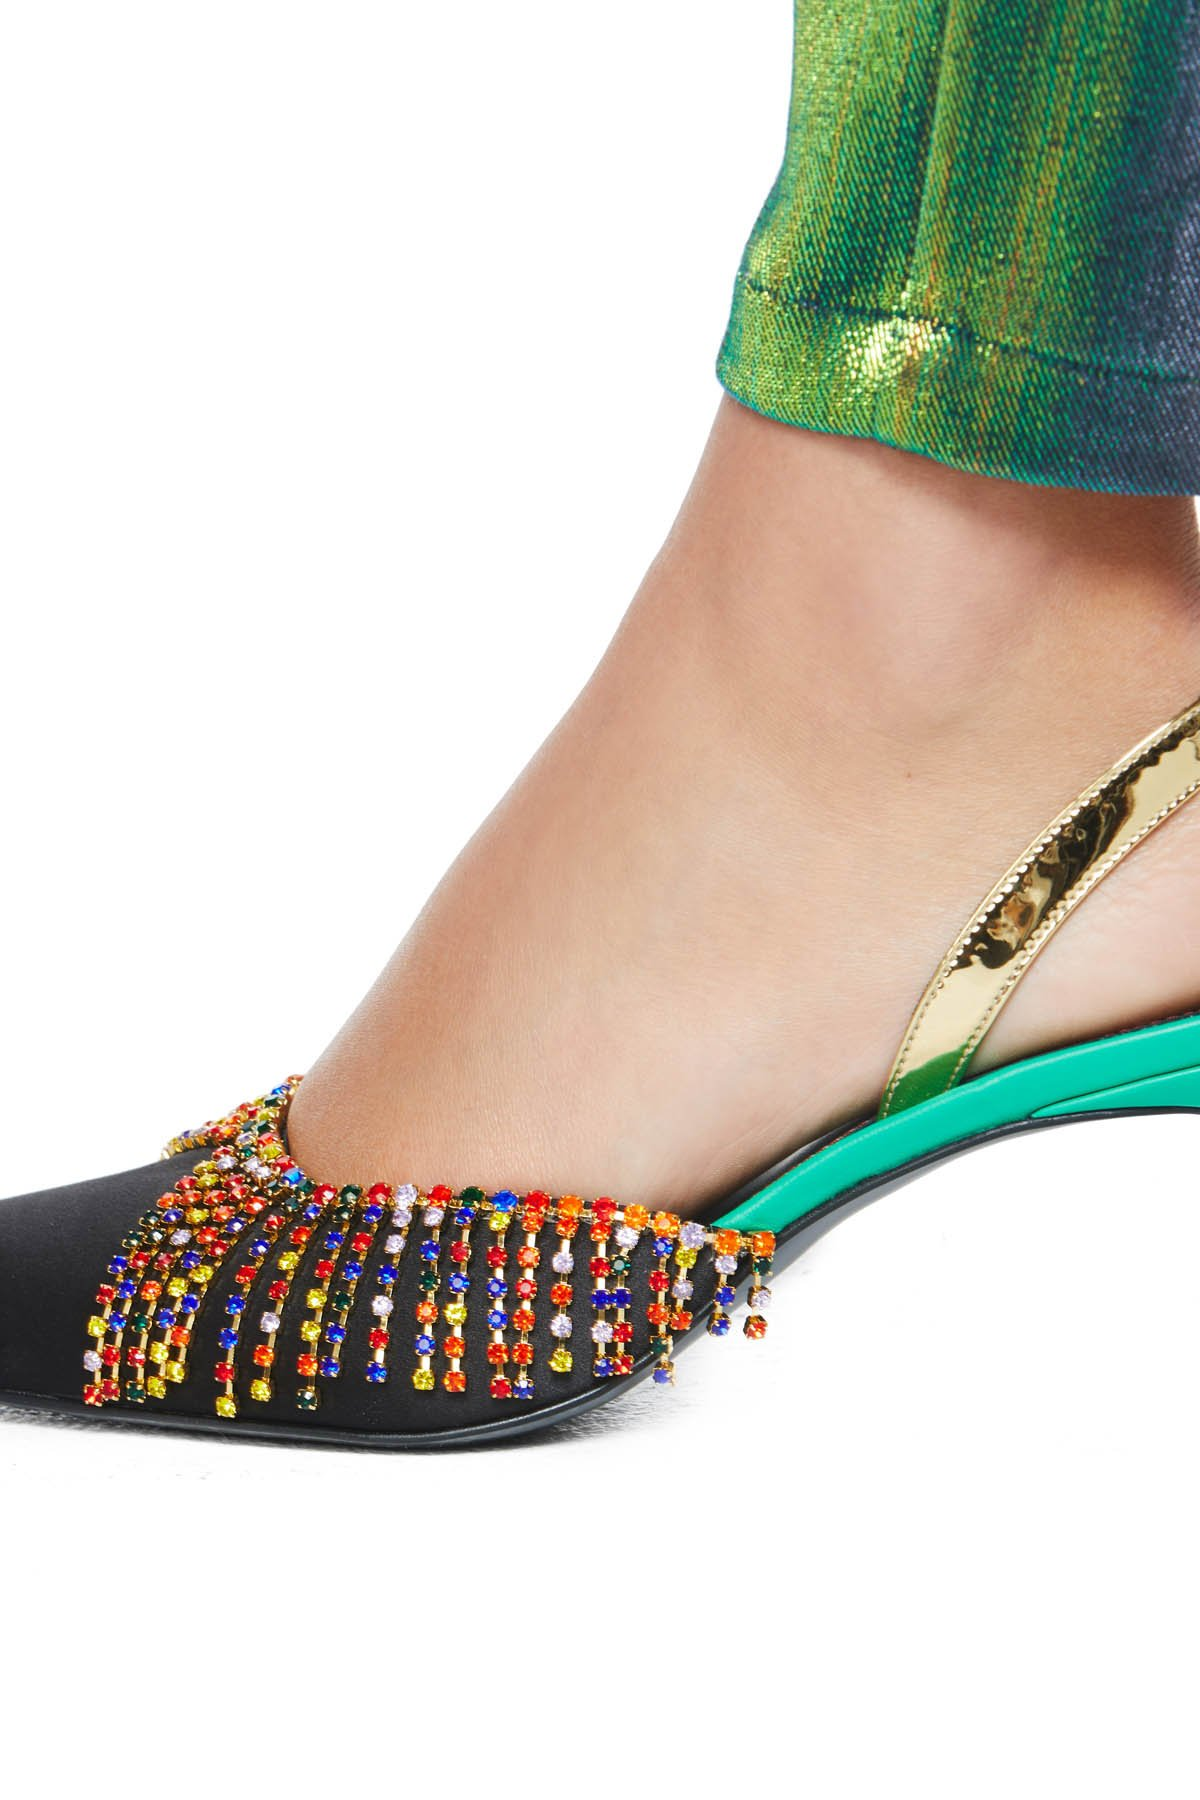 Pointed toe kitten heel with crystal chandelier detailing. 65MM heel. Available in Black/Multi.